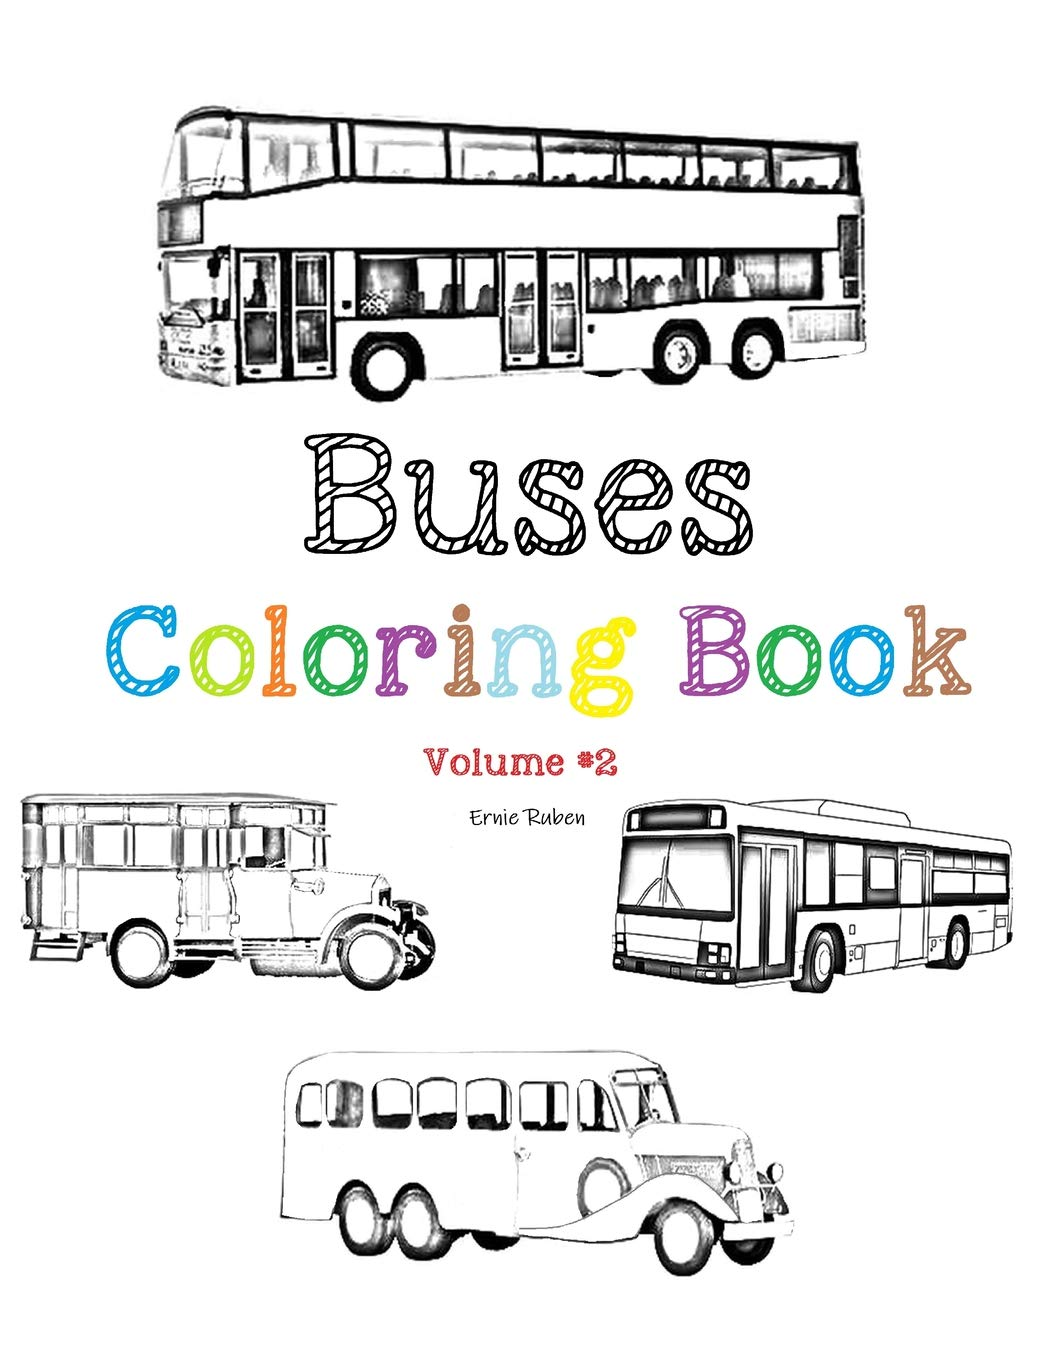 Buses   Coloring Book  Many Types Of Buses From 1920   Today . School Bus Tour Bus Electric Bus Double Decker Bus And More..volume  2